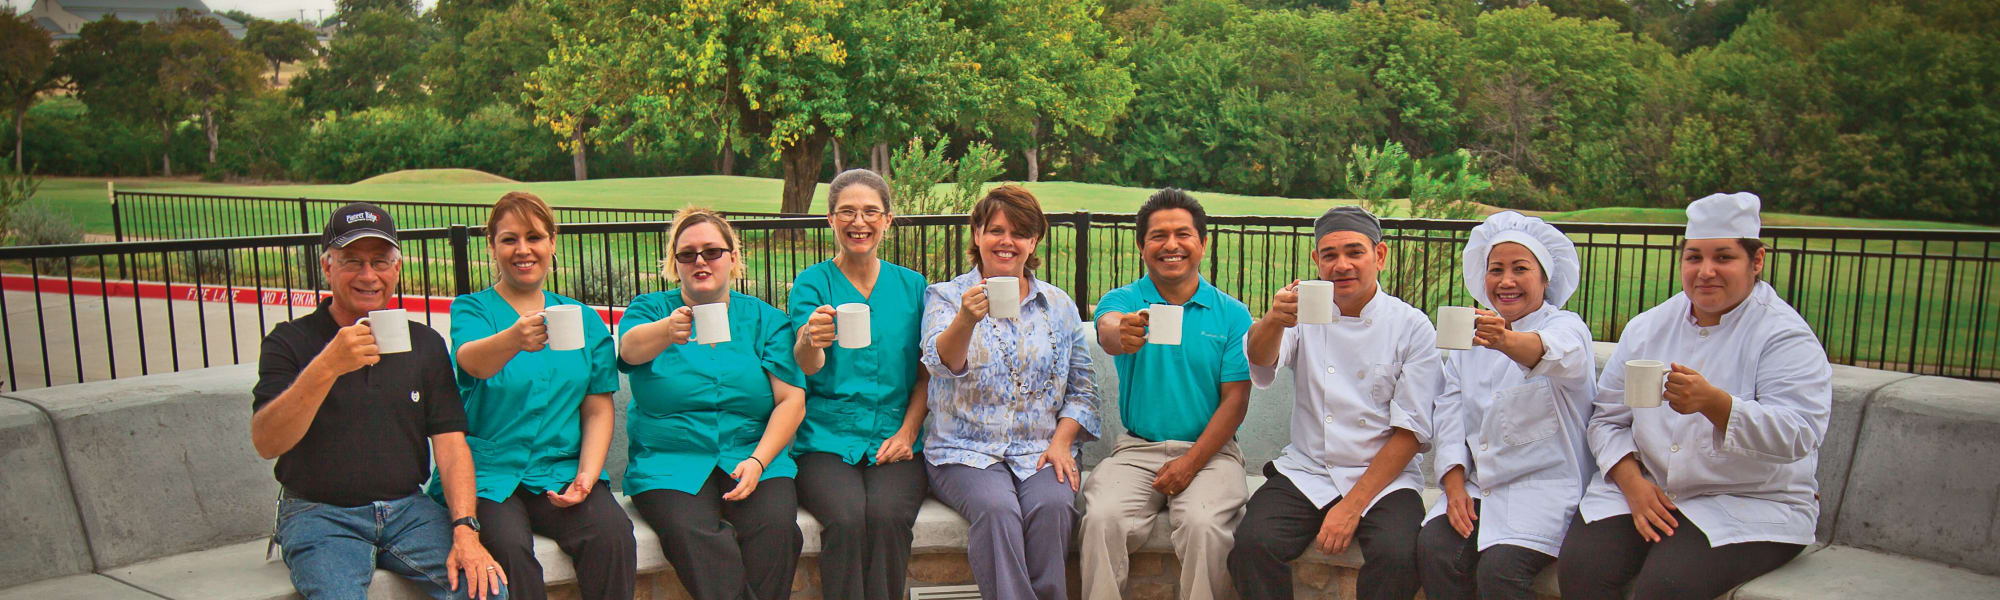 Careers at Edgewood Point Assisted Living in Beaverton, Oregon